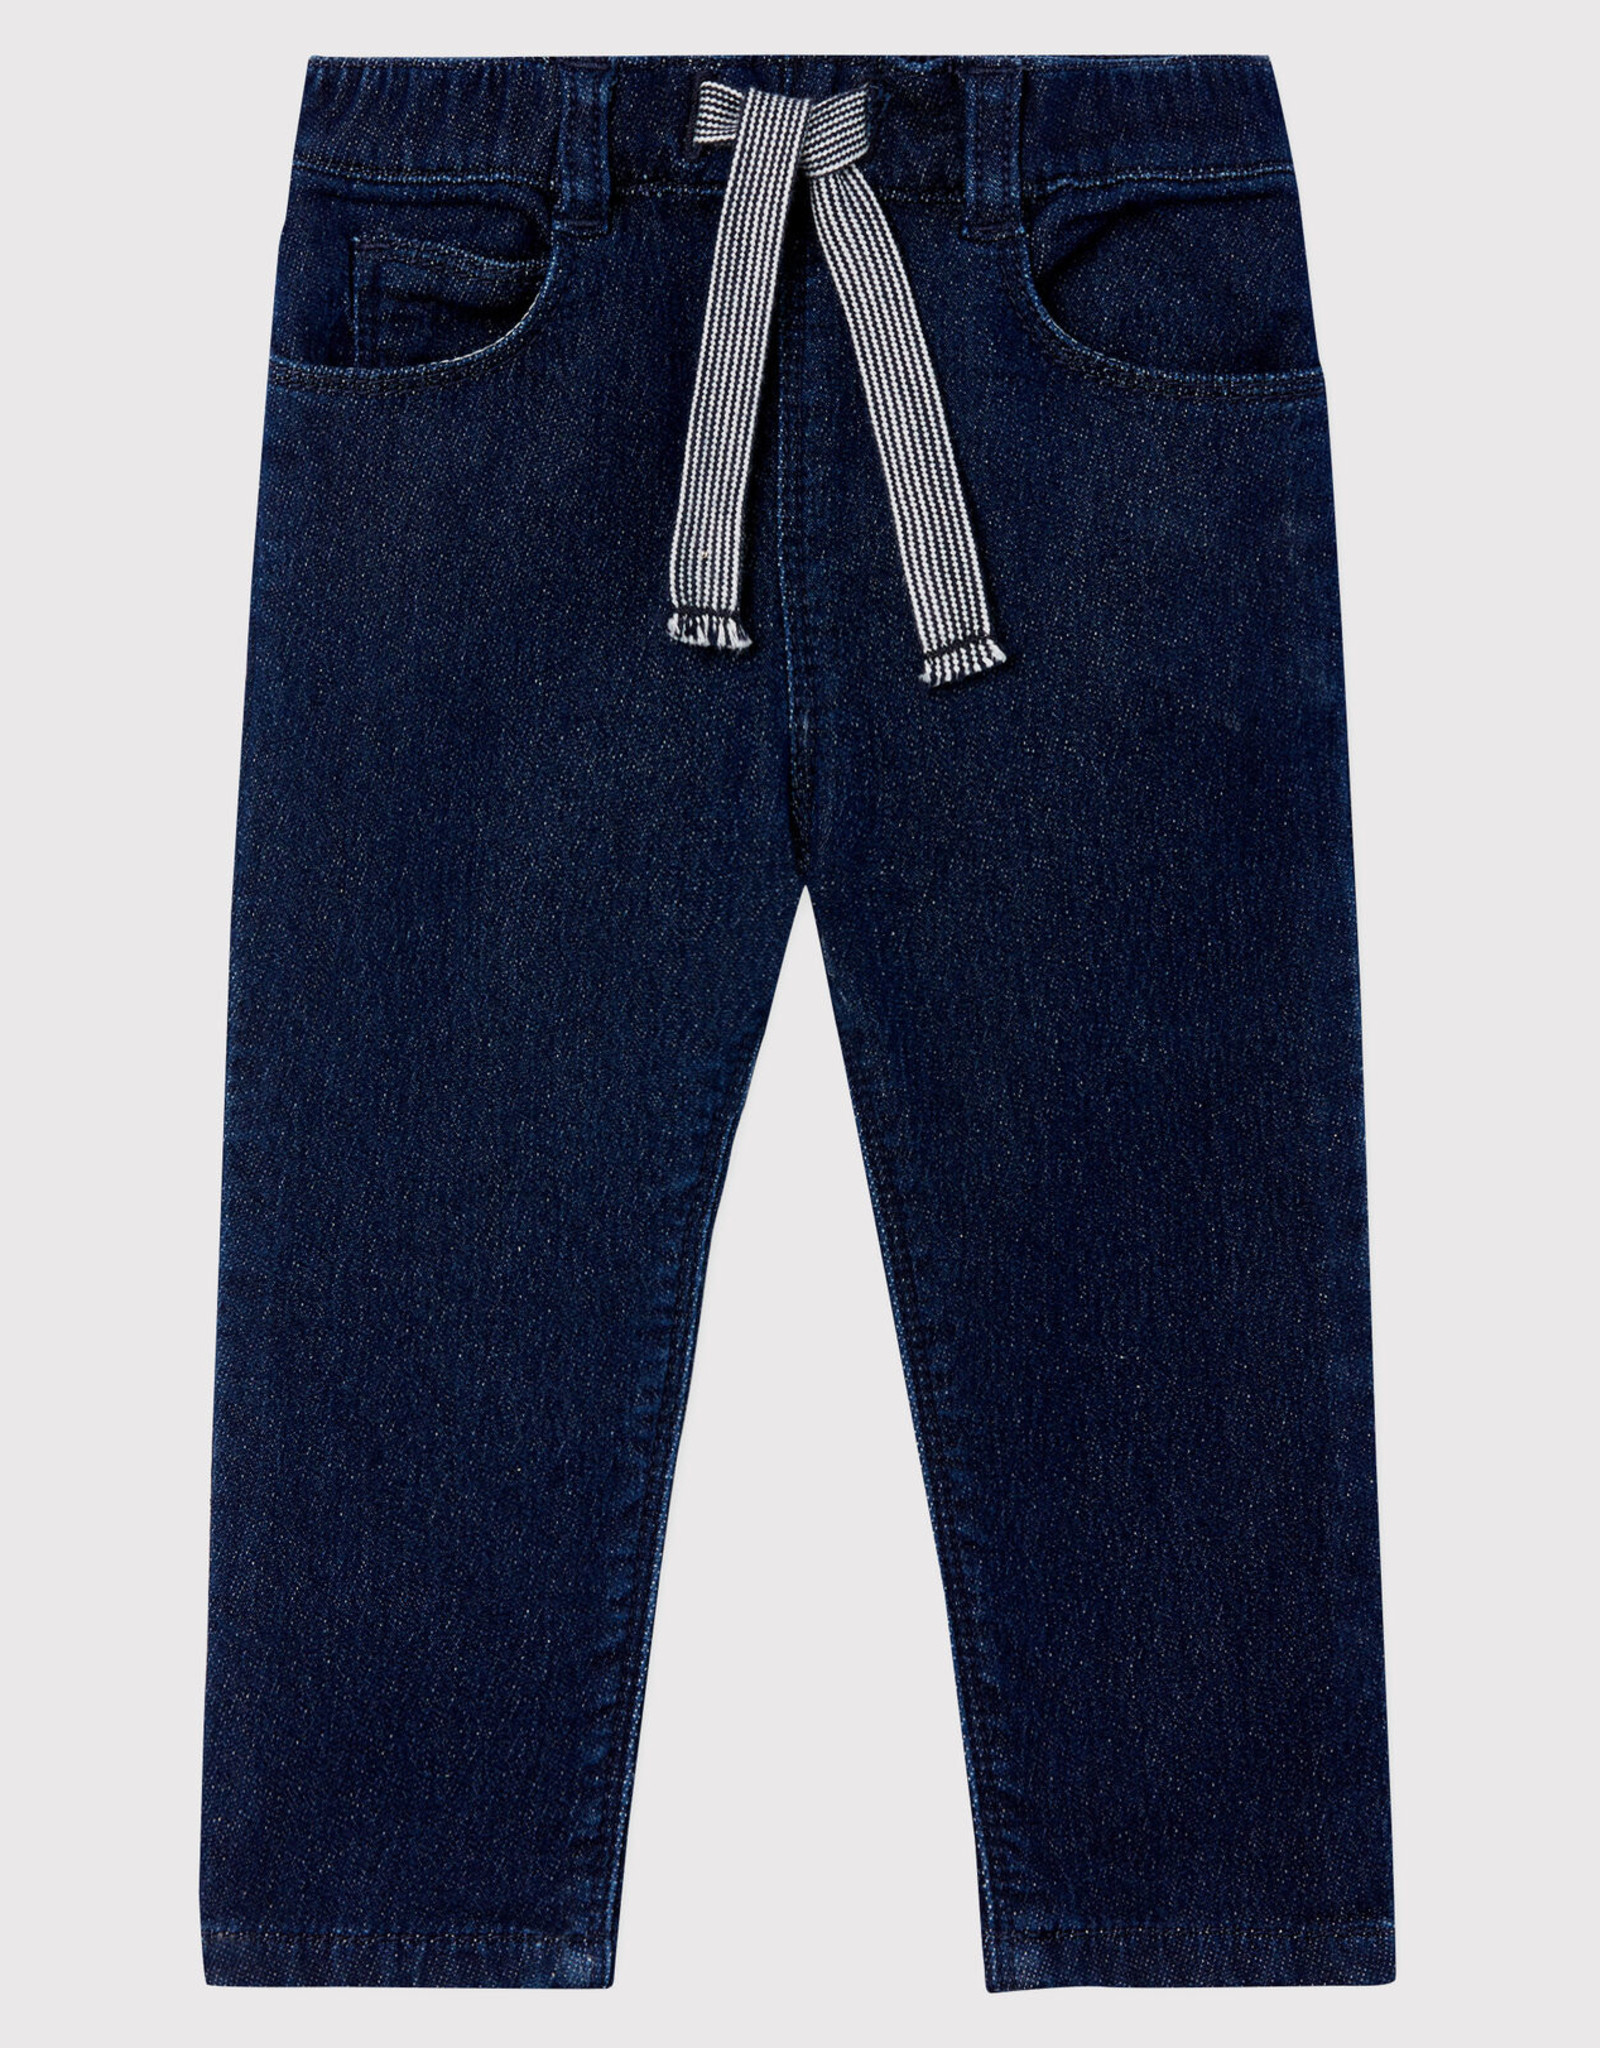 Baby's denim-look knit trousers